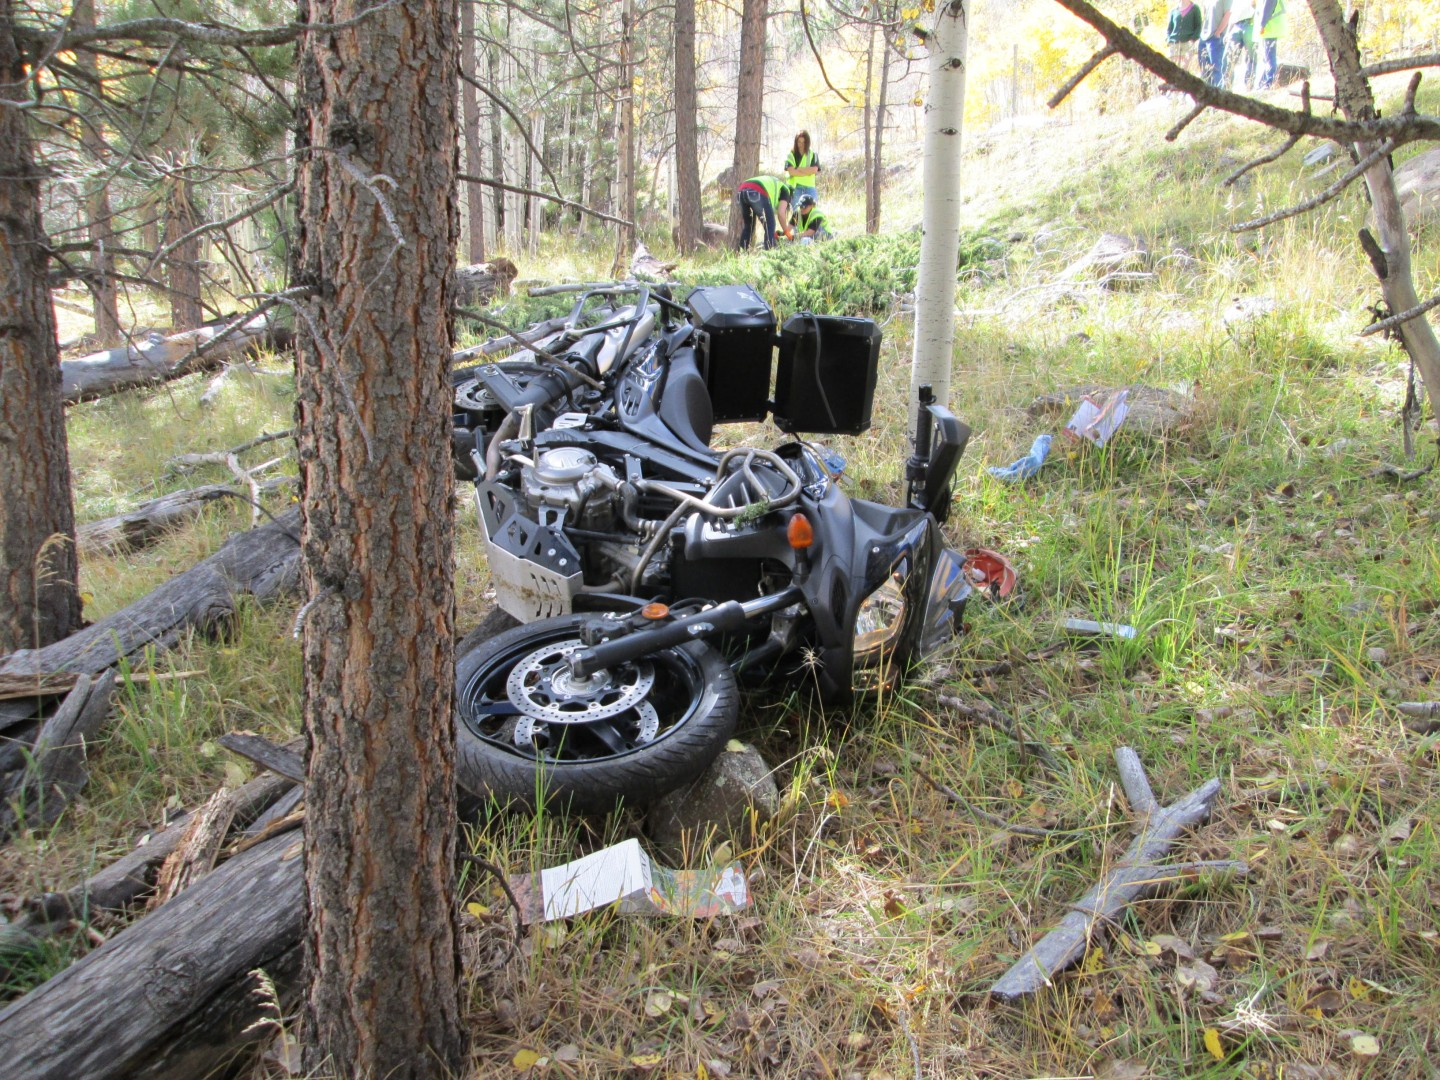 Uhp Releases Name Of Man Killed In Motorcycle Falling Tree